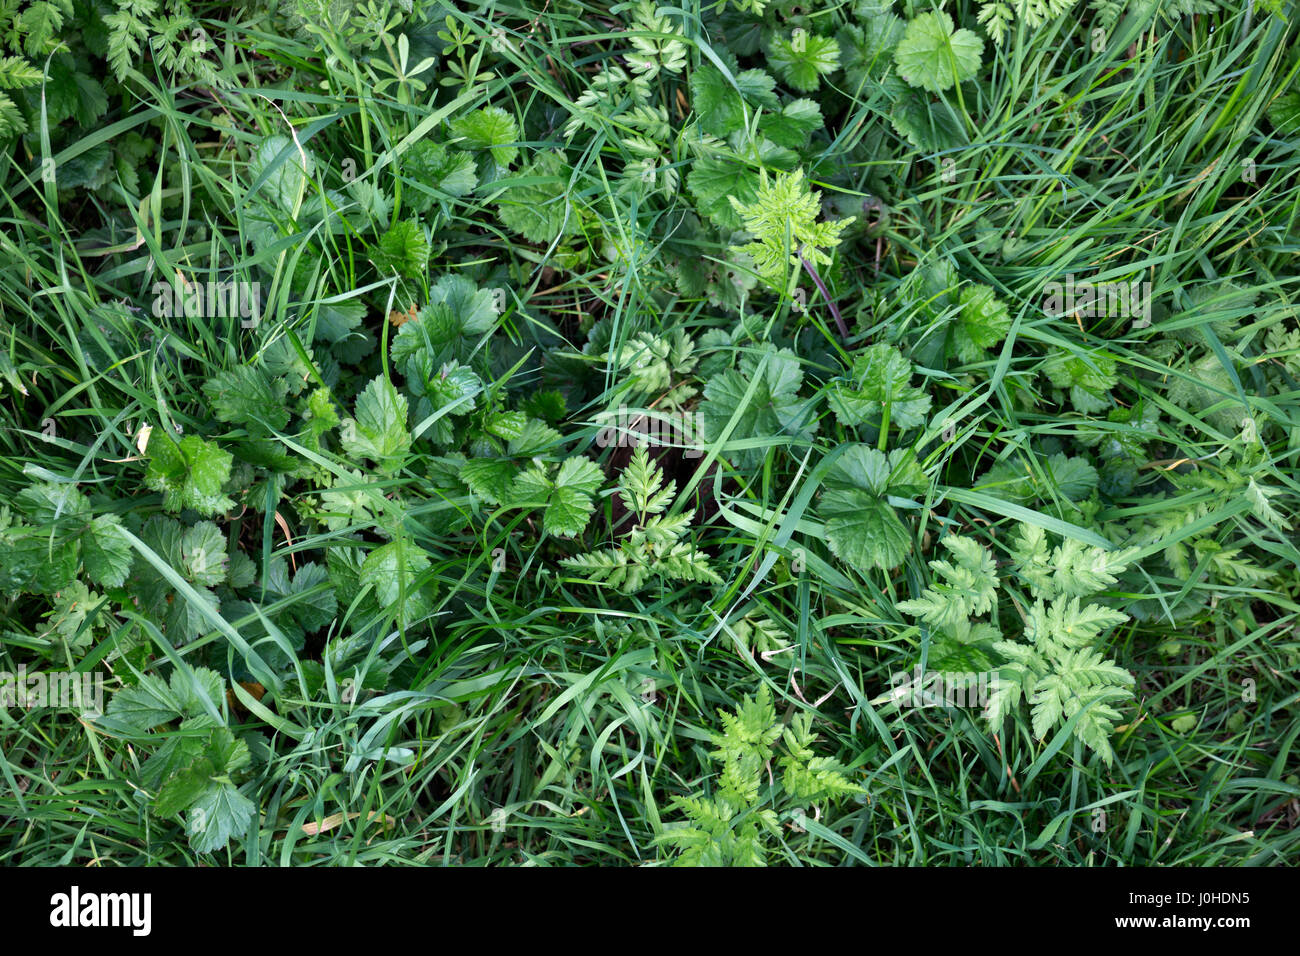 British wildflowers, mixed foliage in spring. - Stock Image